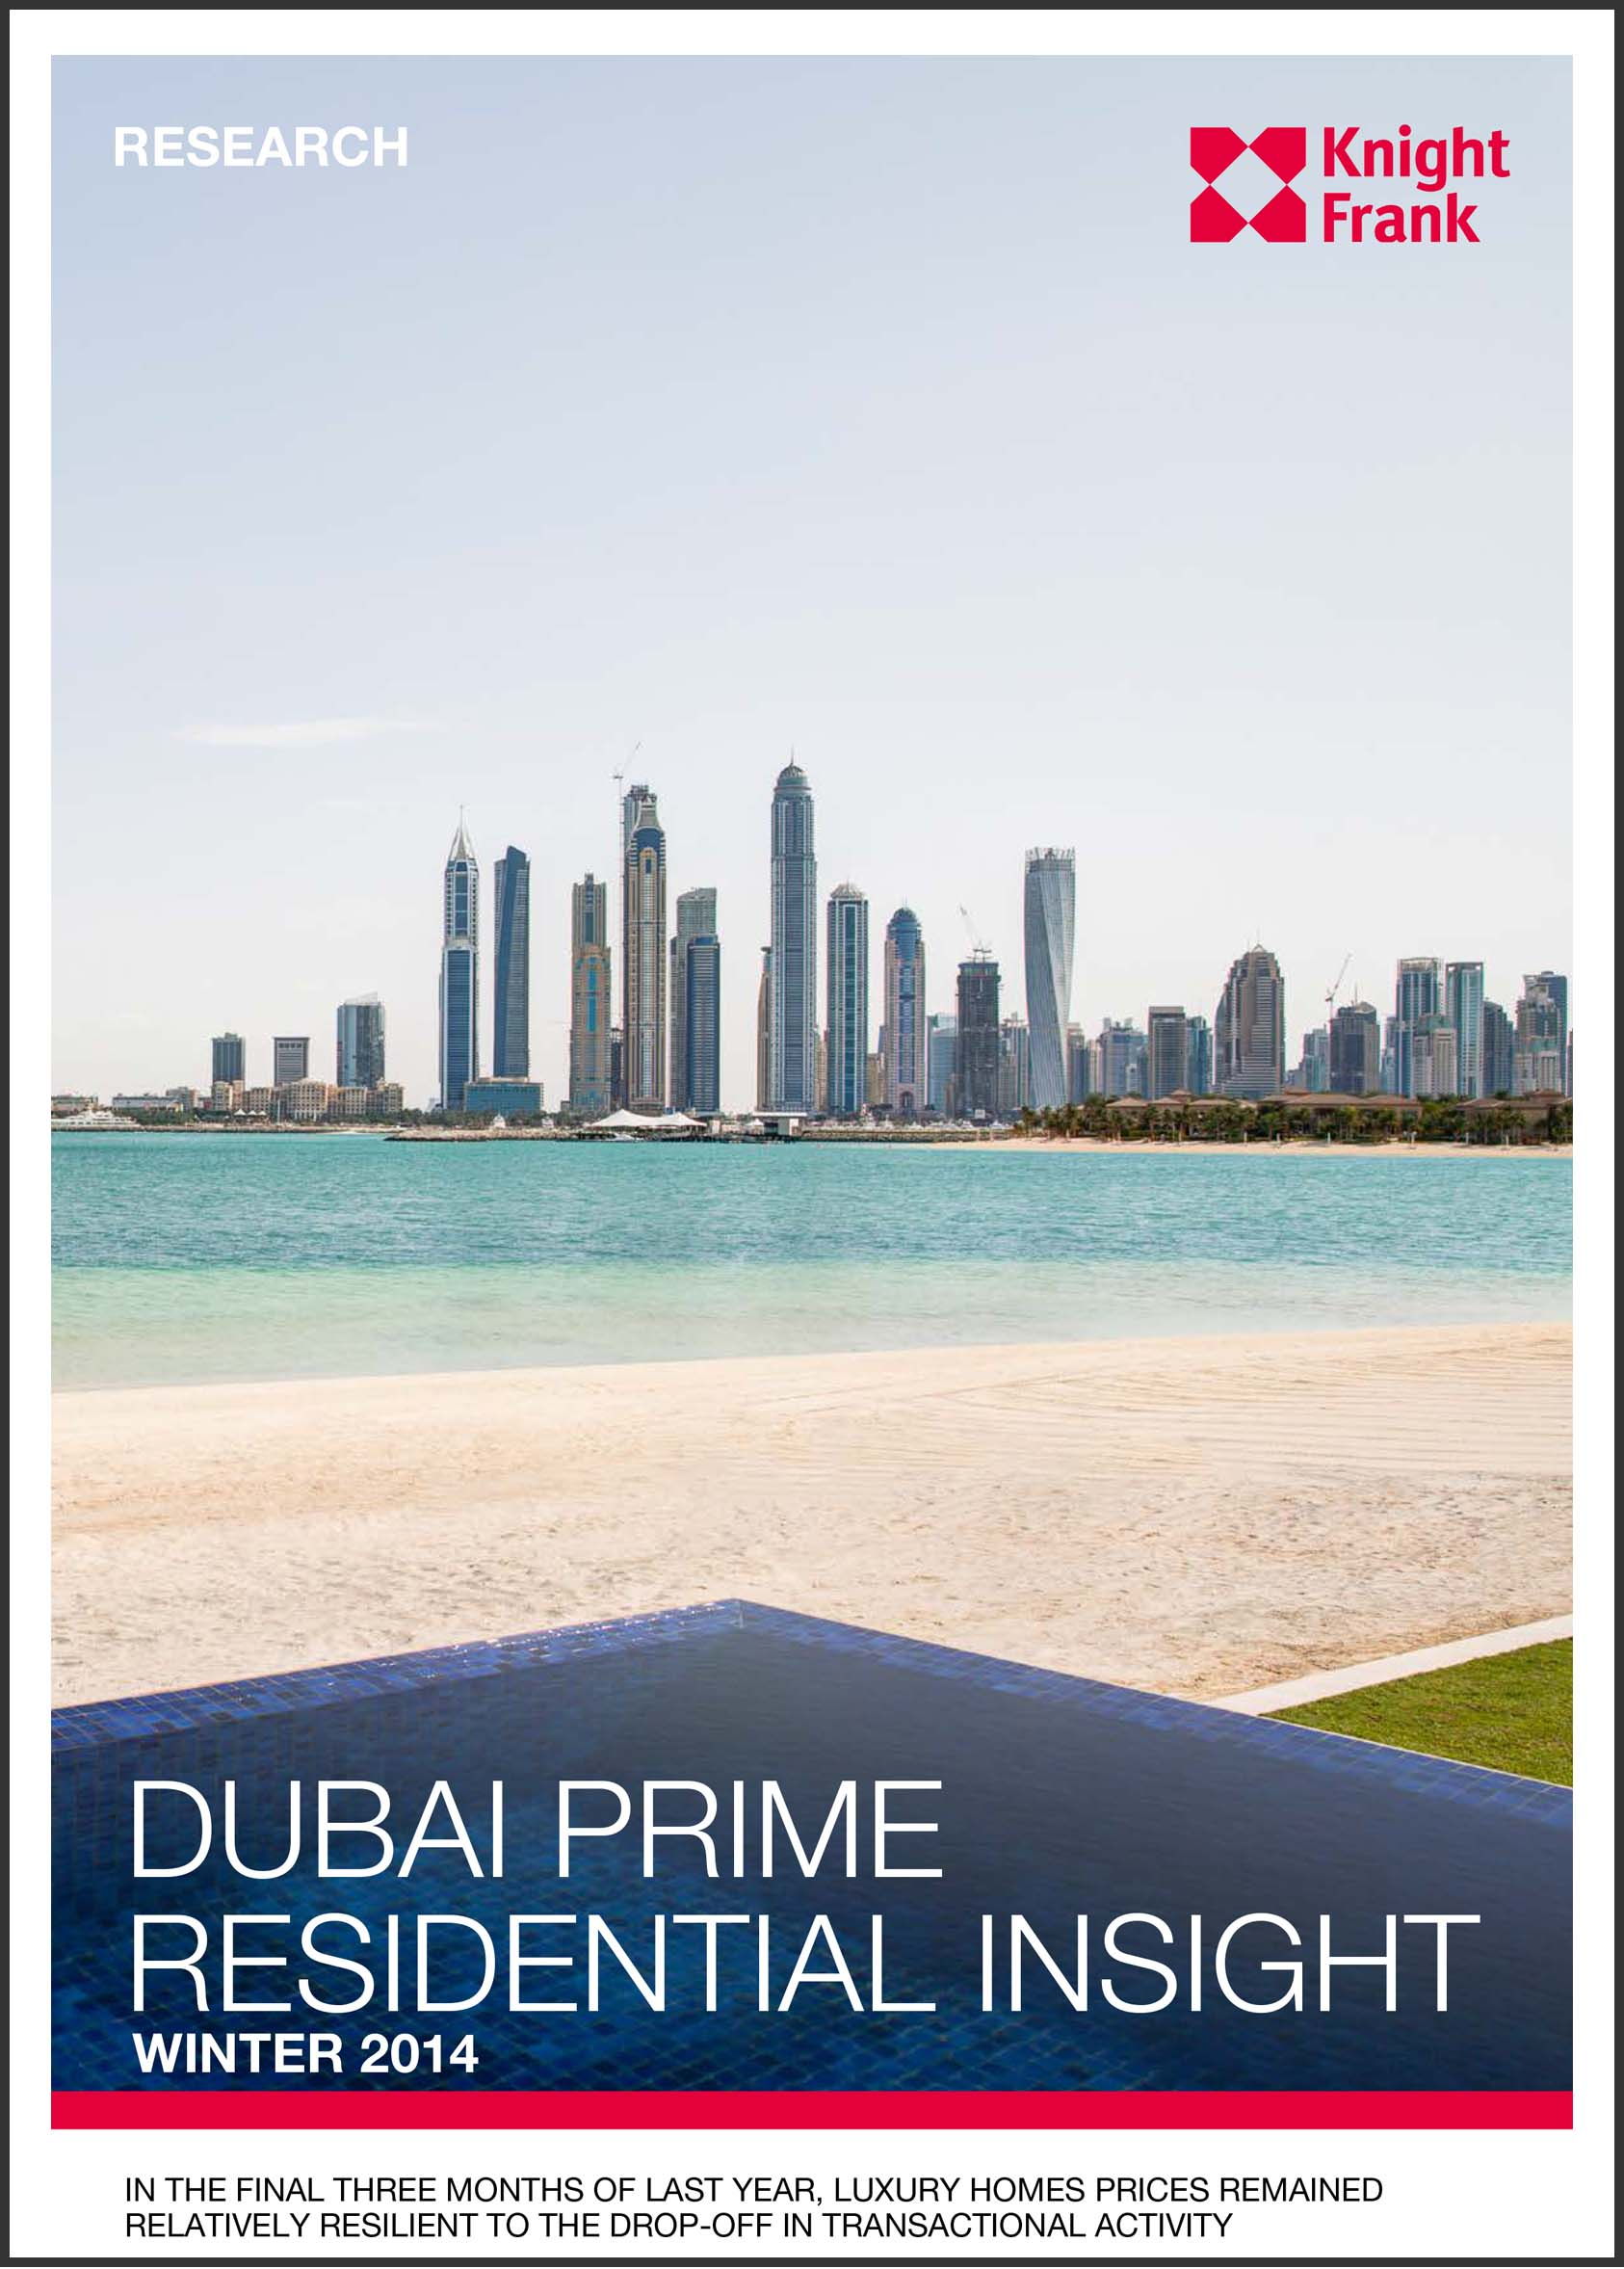 Dubai Prime Residential Insight Winter 2014